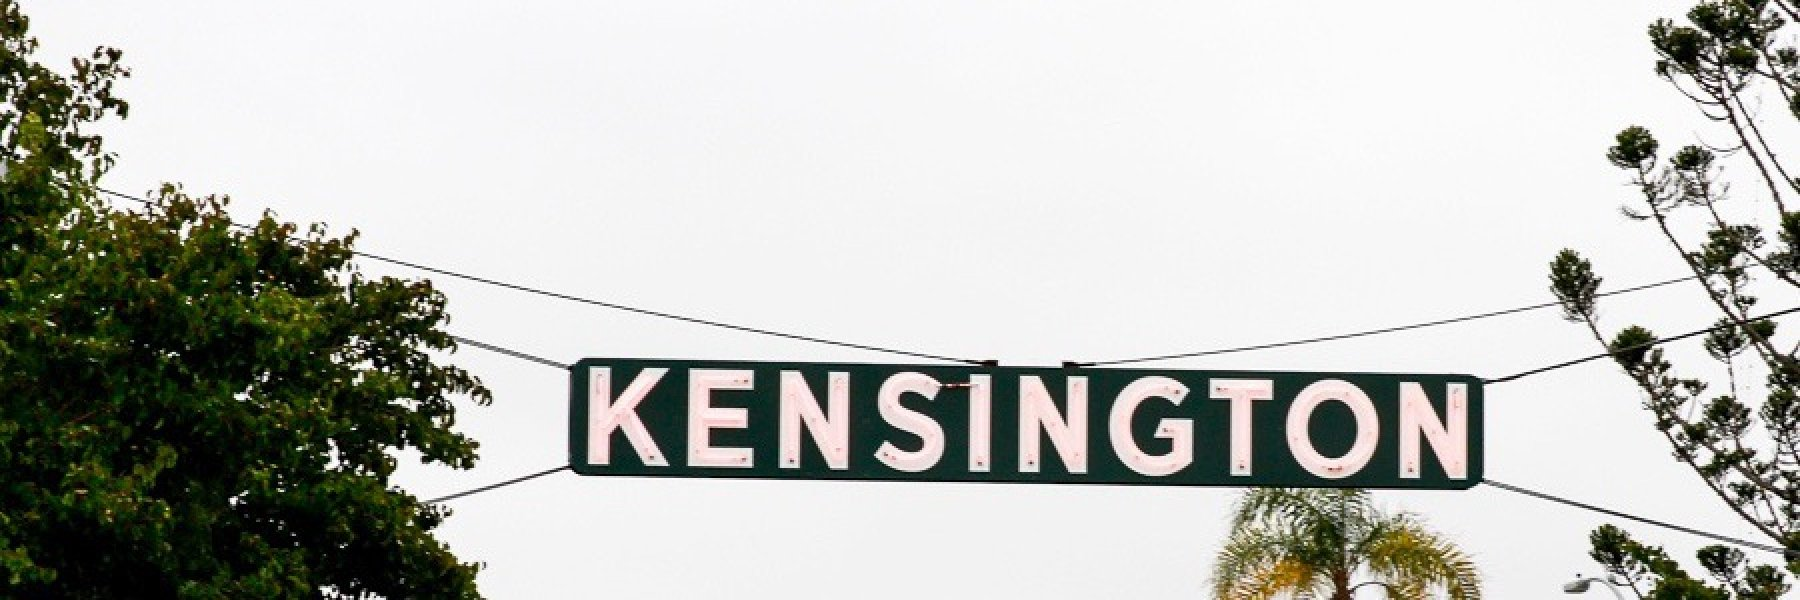 Kensington is a community of homes in San Diego California